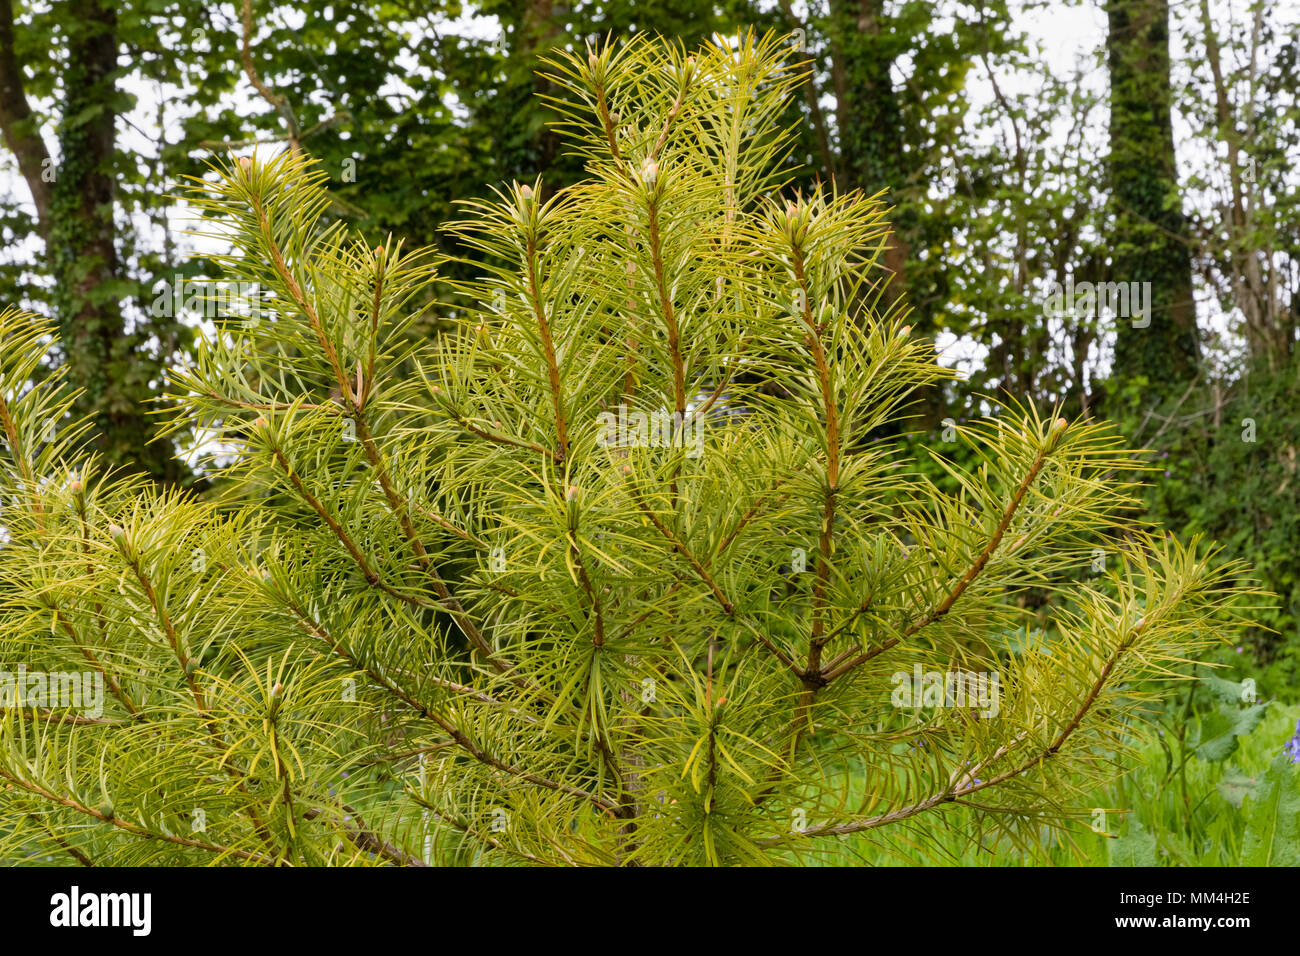 Young specimen of the endangered conifer Cathaya argyrophylla in the arboretum at The Garden House, Buckland Monachorum, Devon, UK - Stock Image